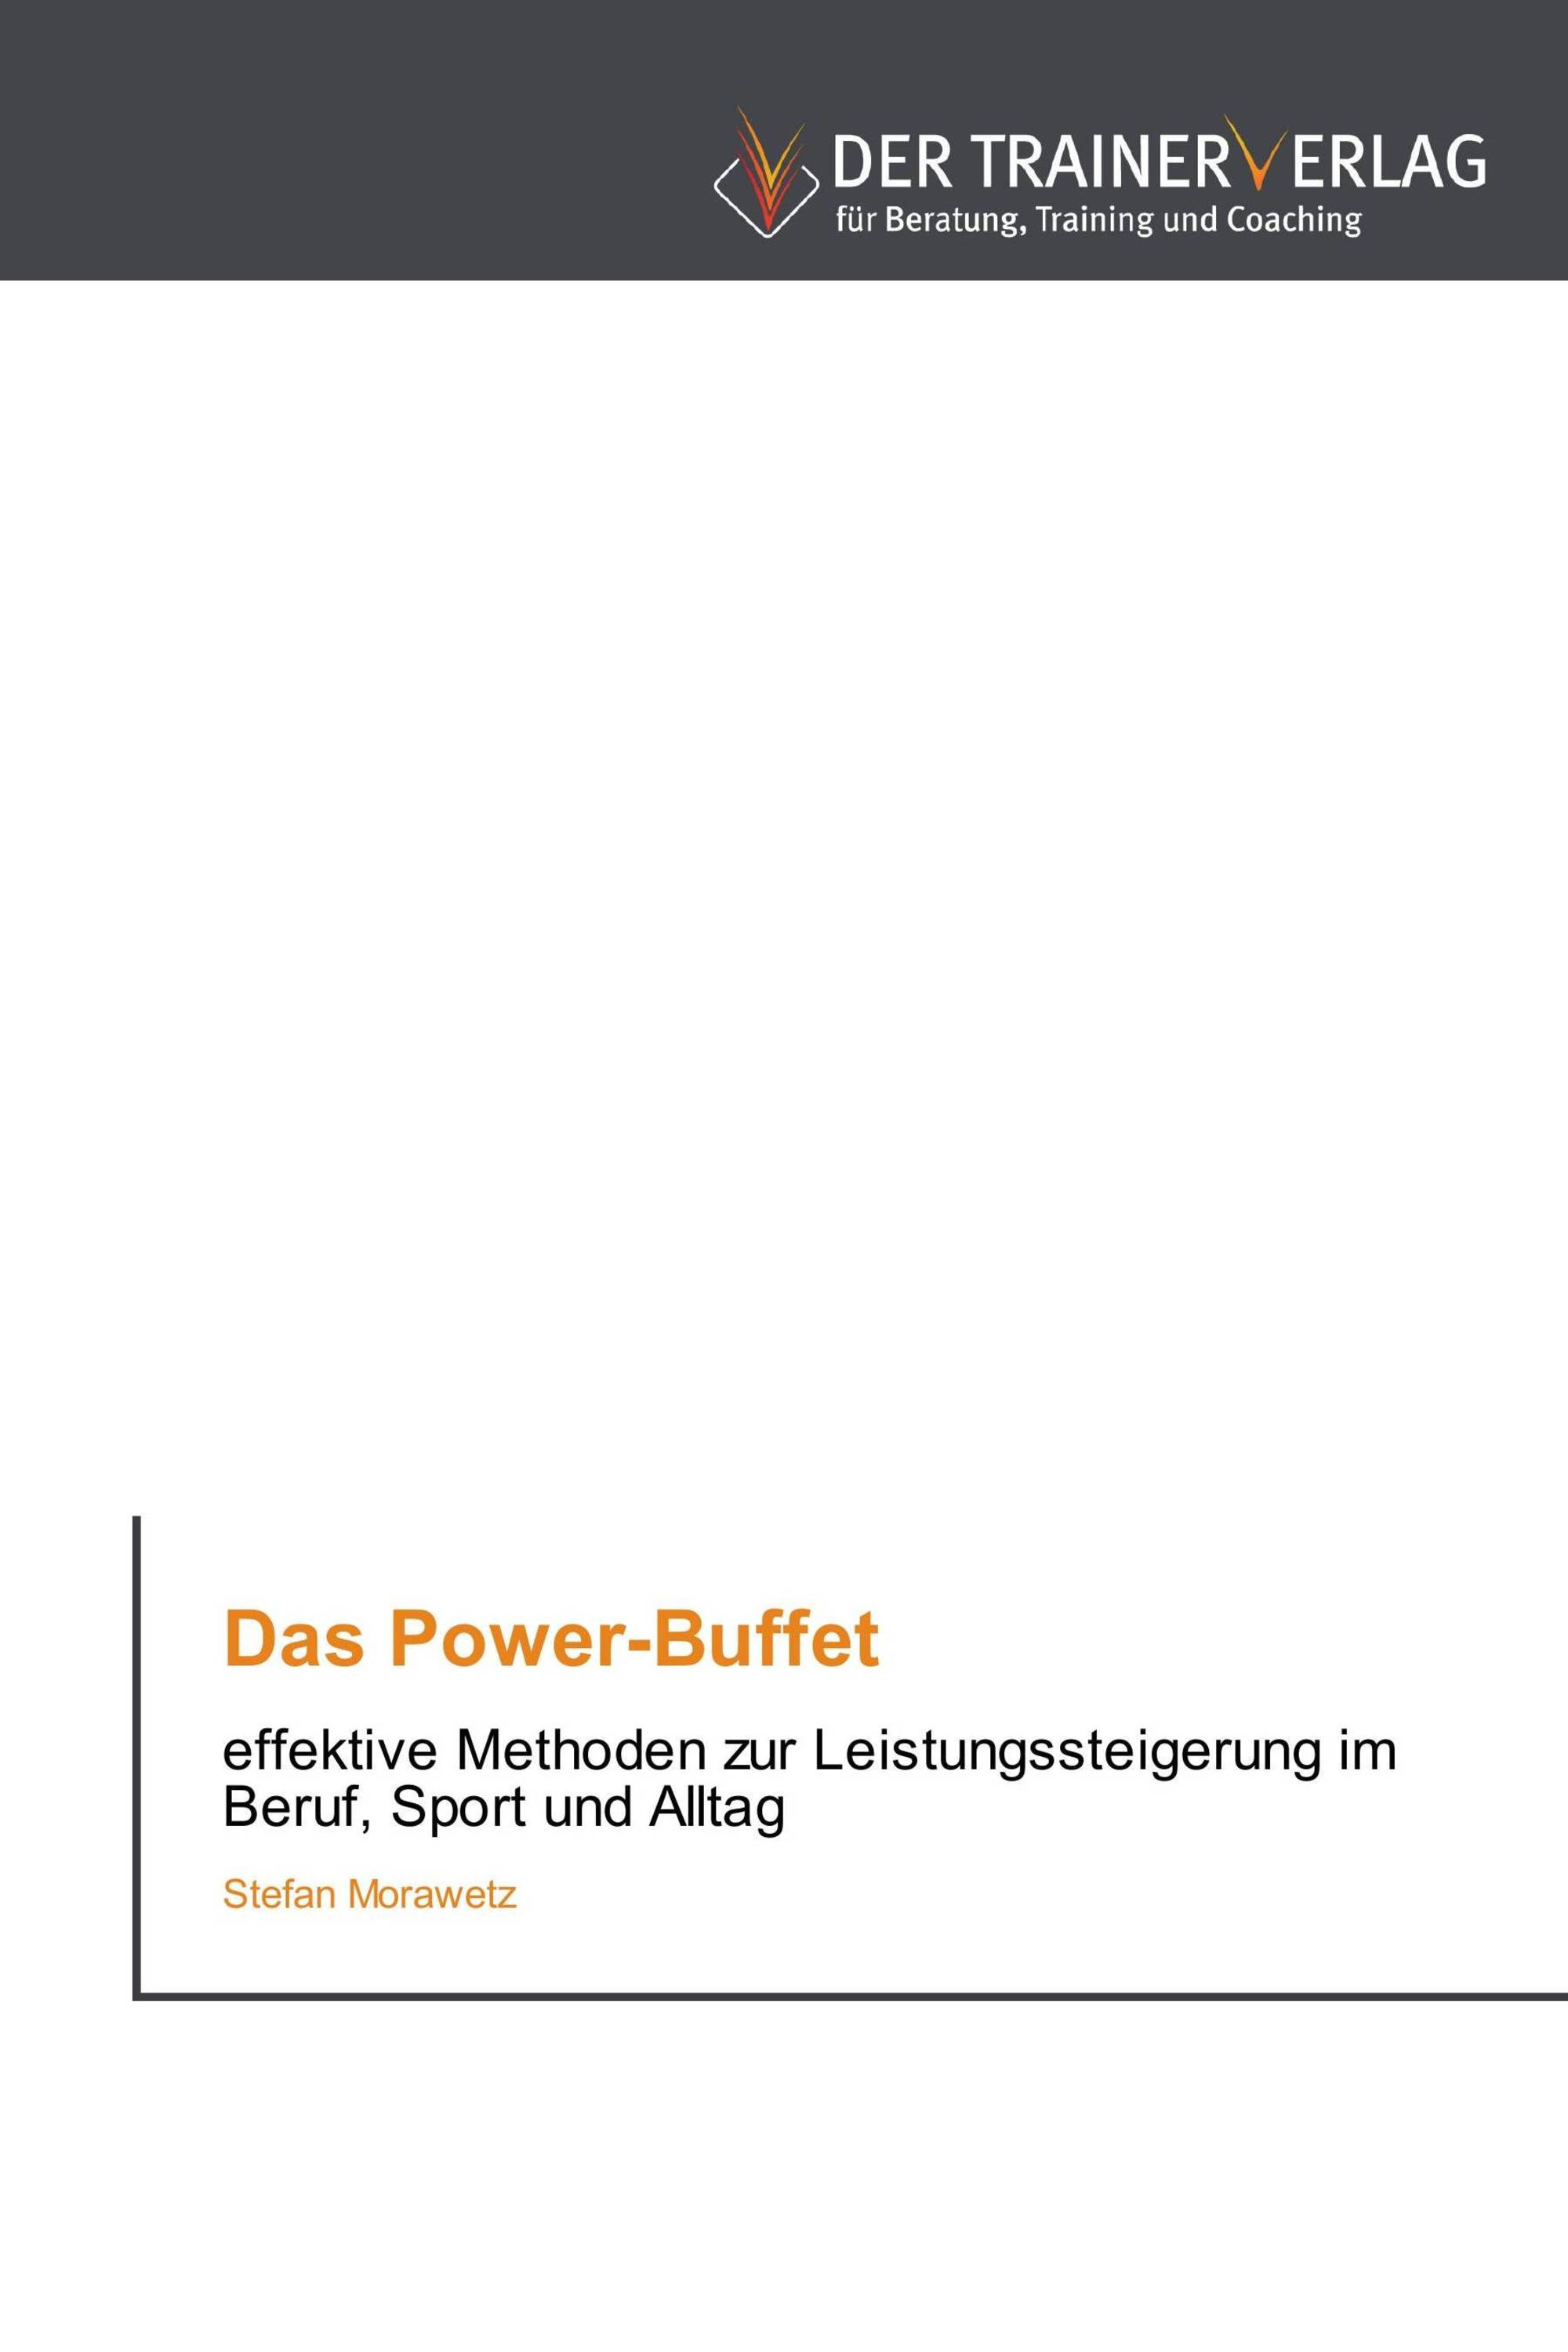 Das Power-Buffet